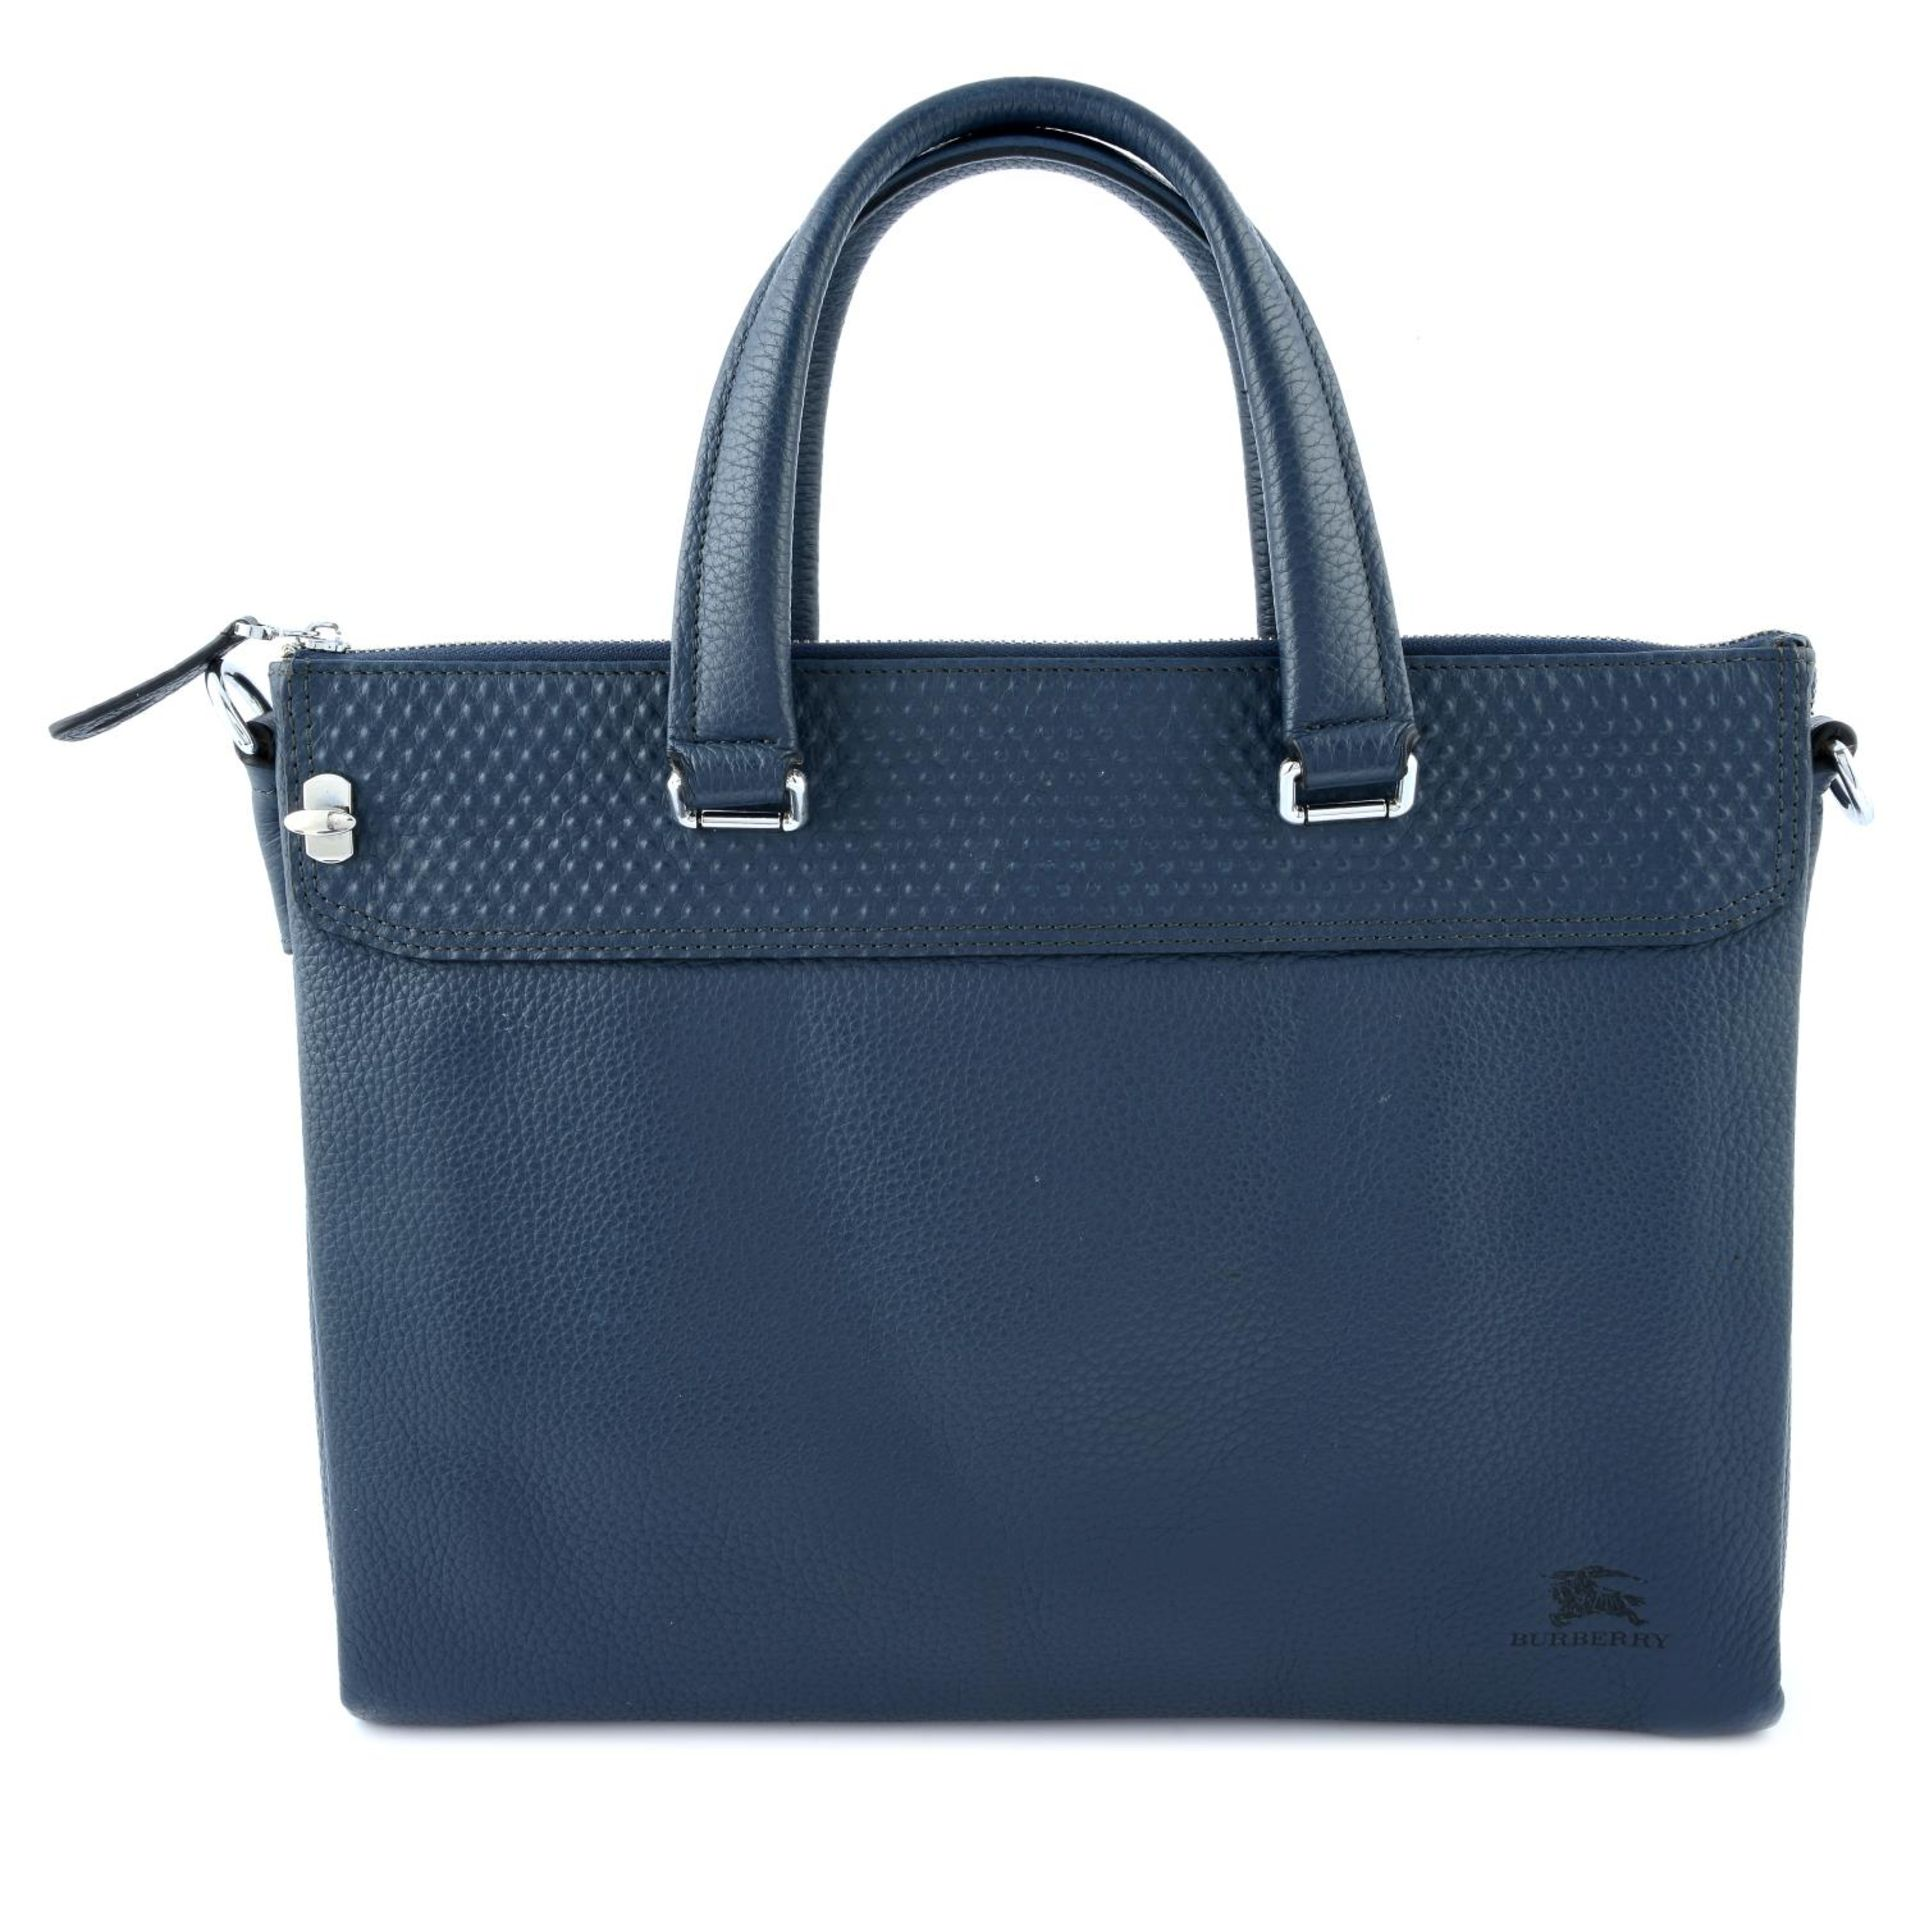 BURBERRY - a blue leather briefcase.